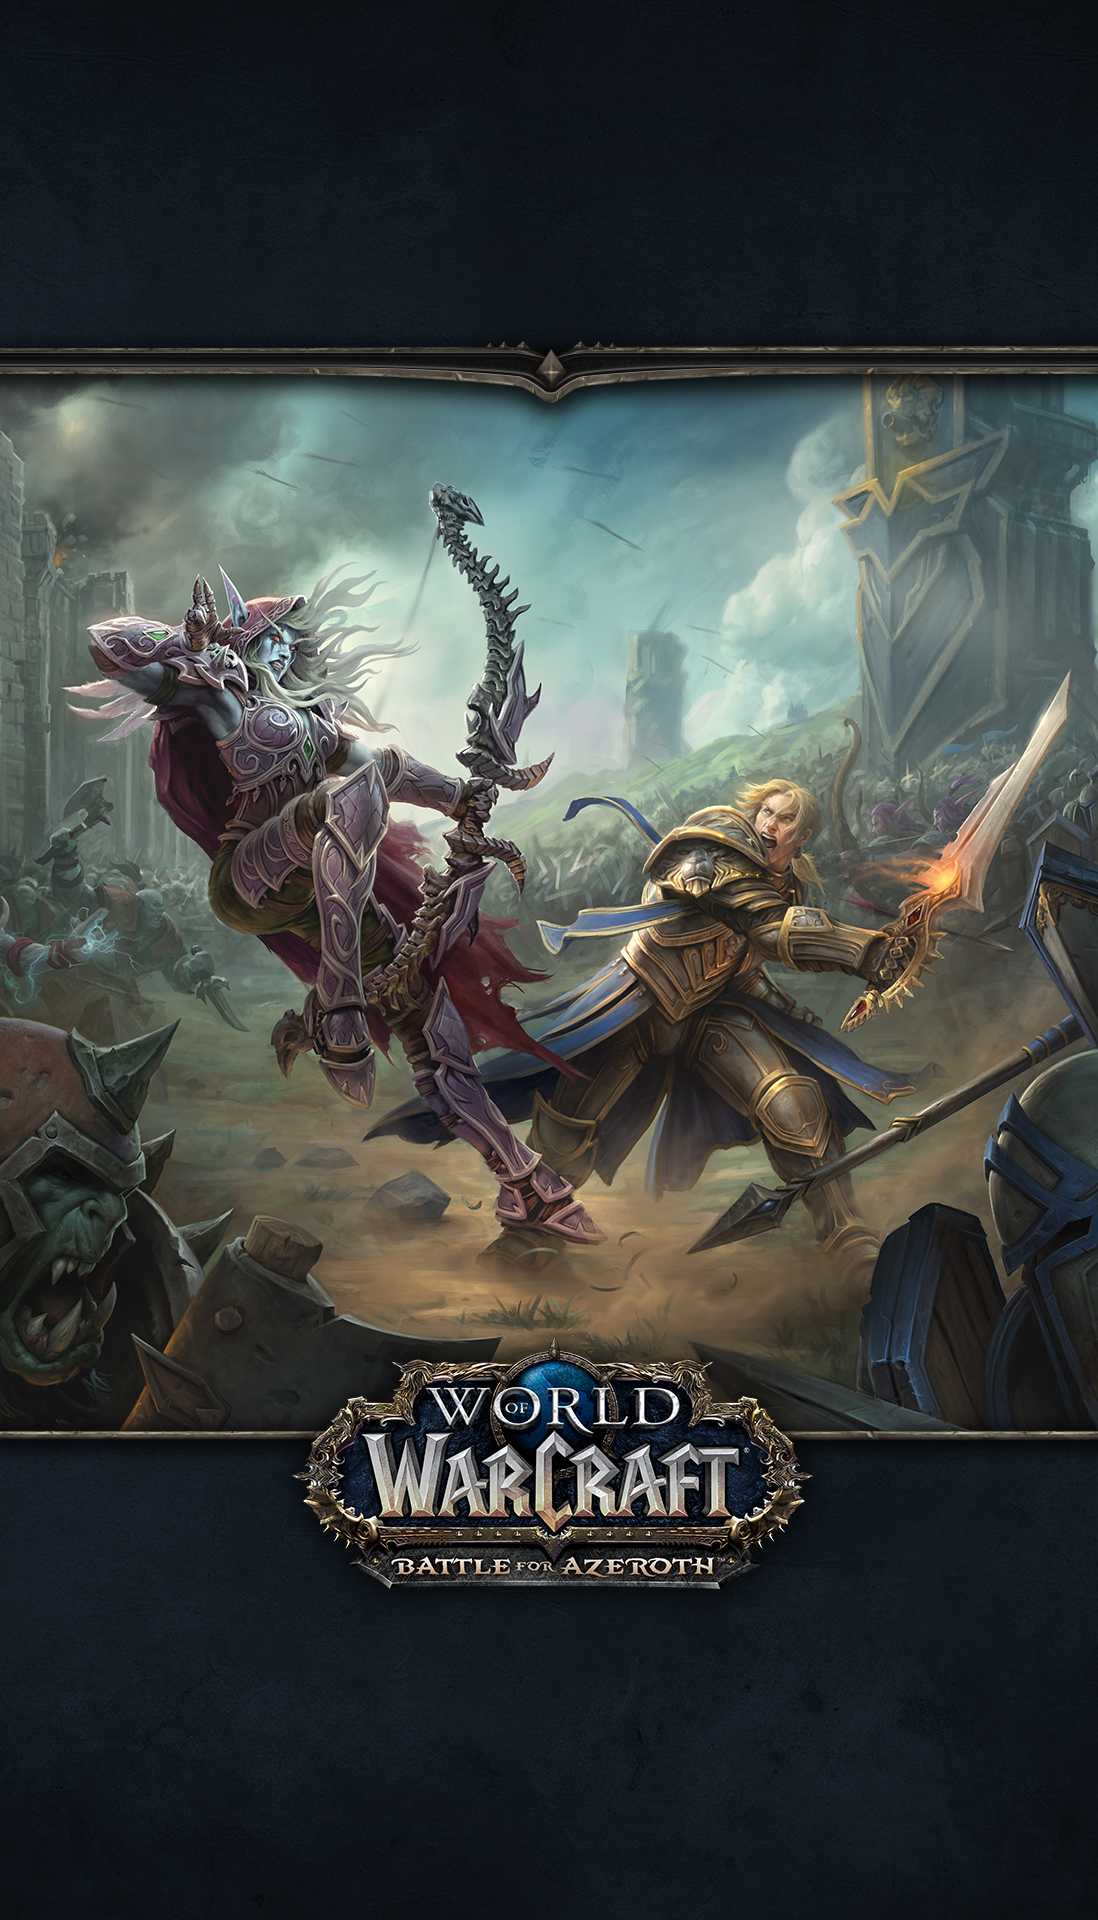 Battle for Azeroth - Media - WoW